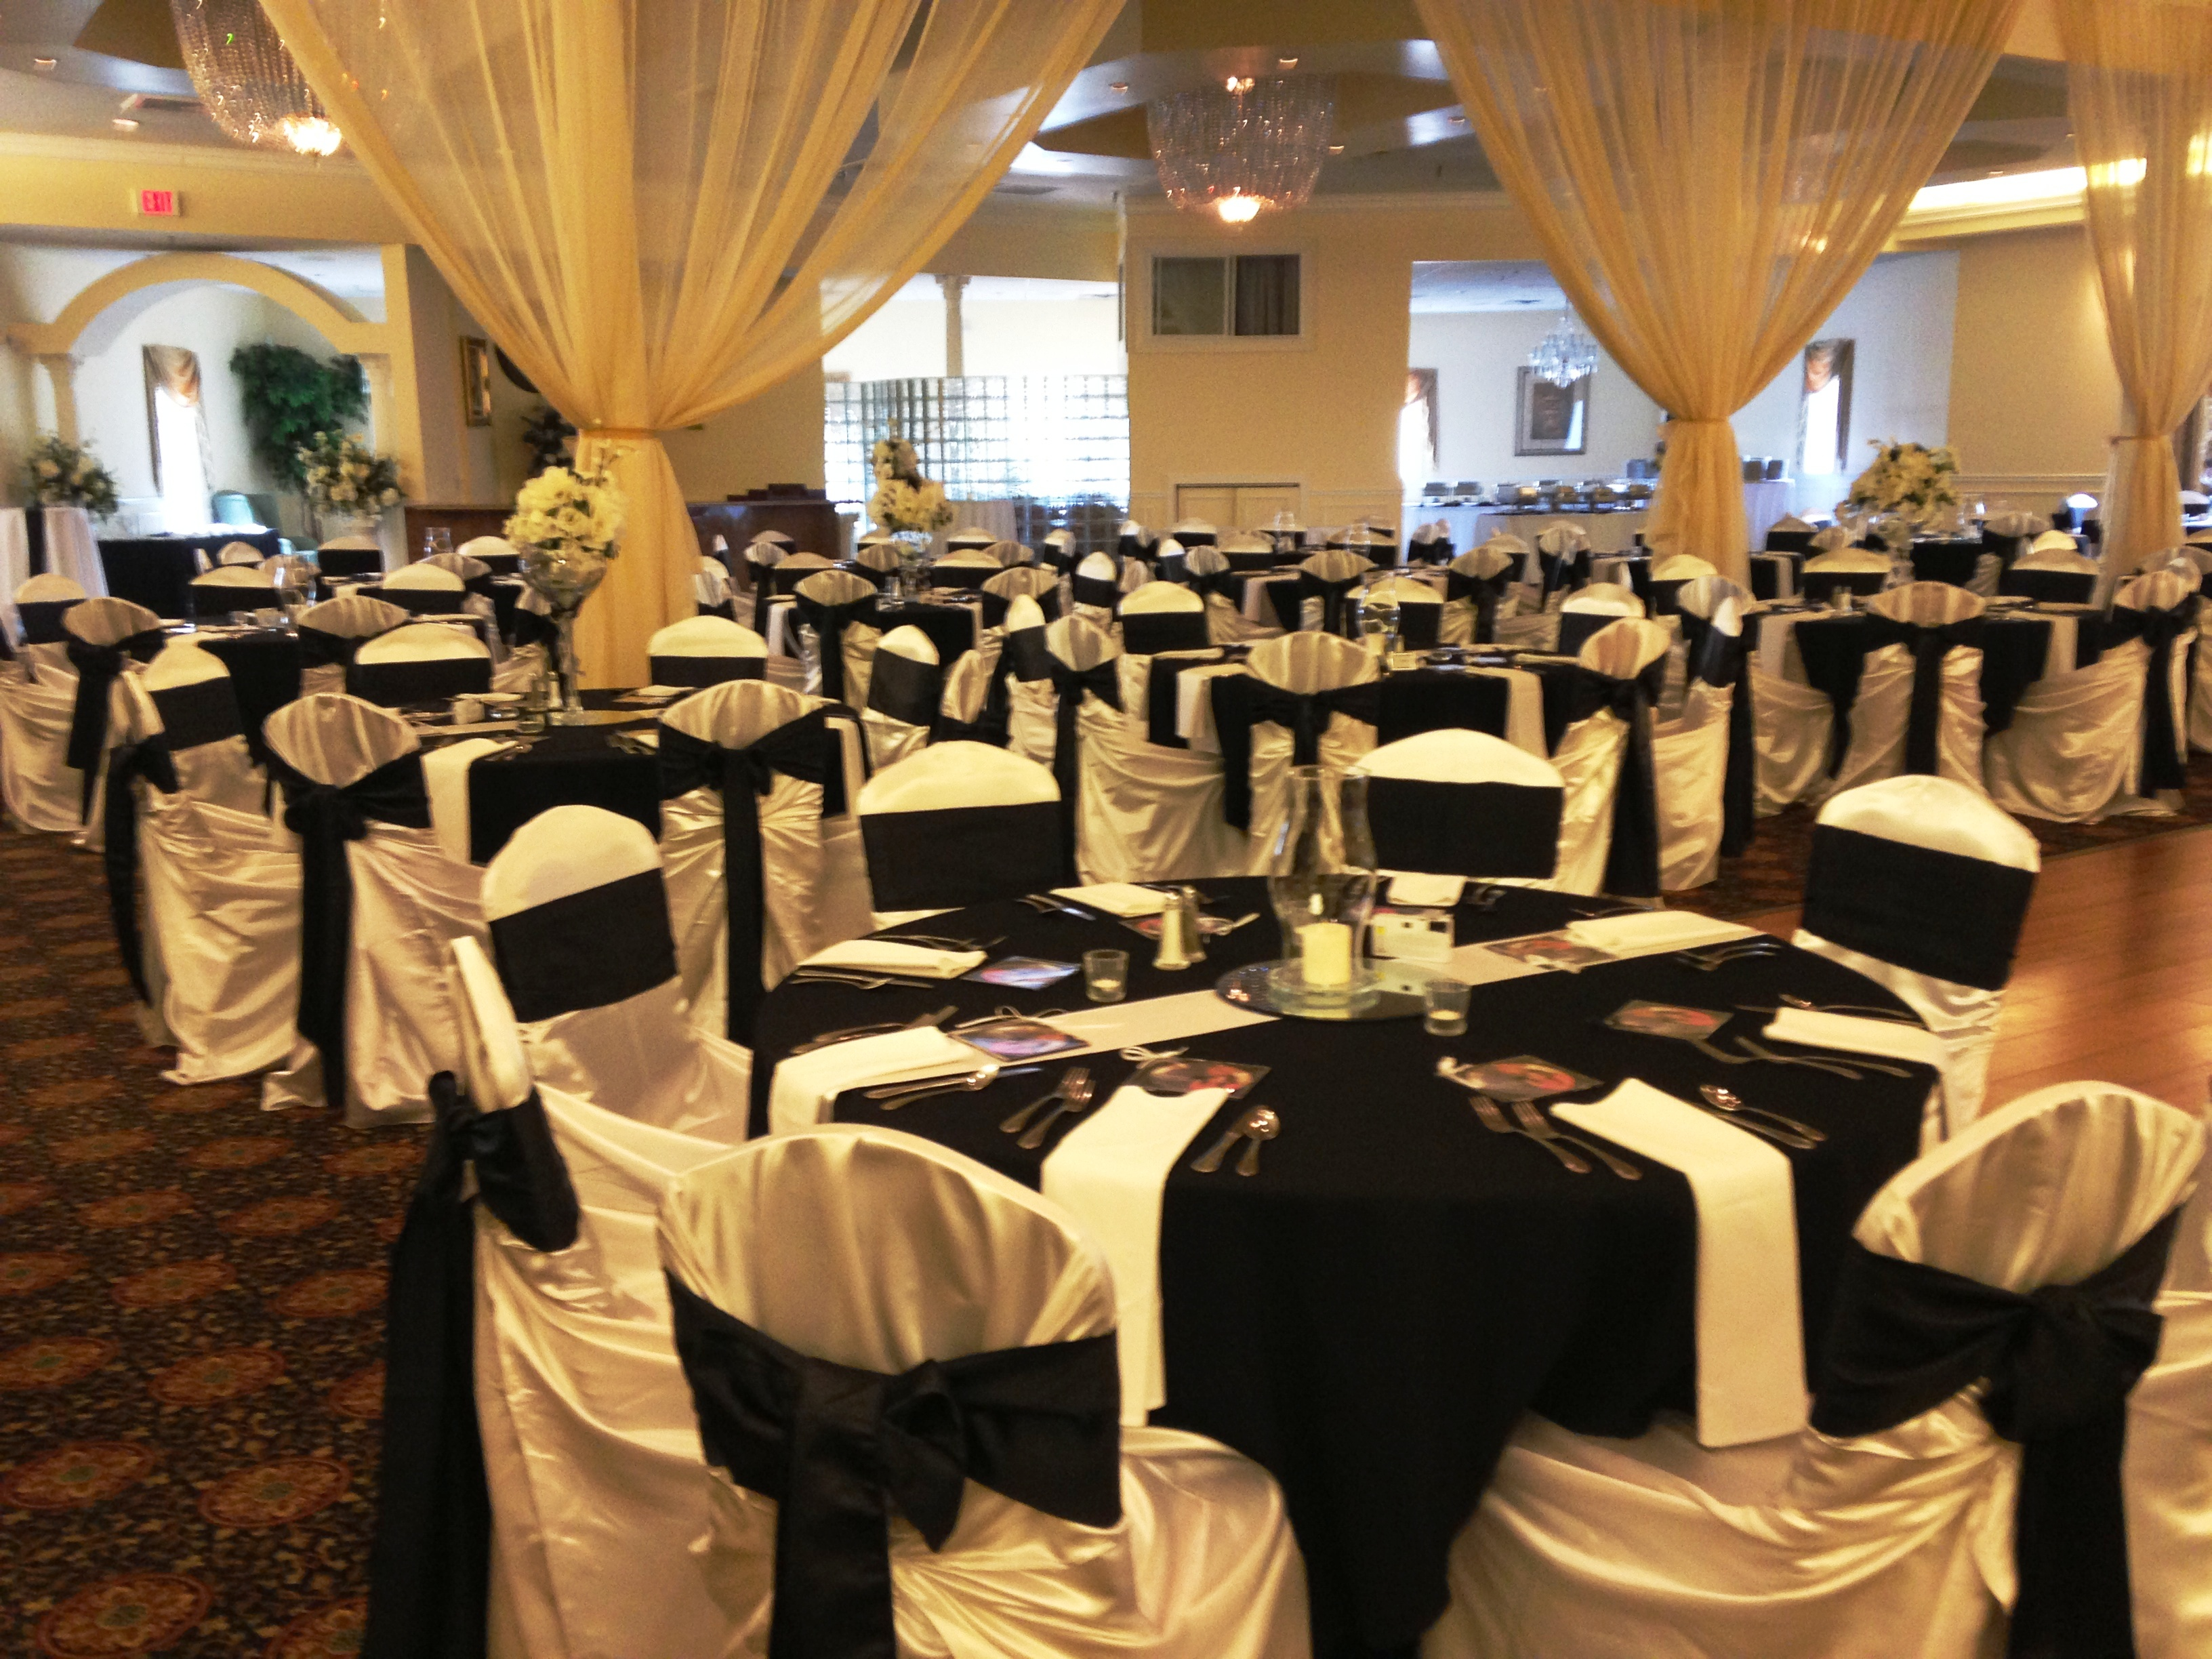 The Clock Tower Banquet & Conference Center